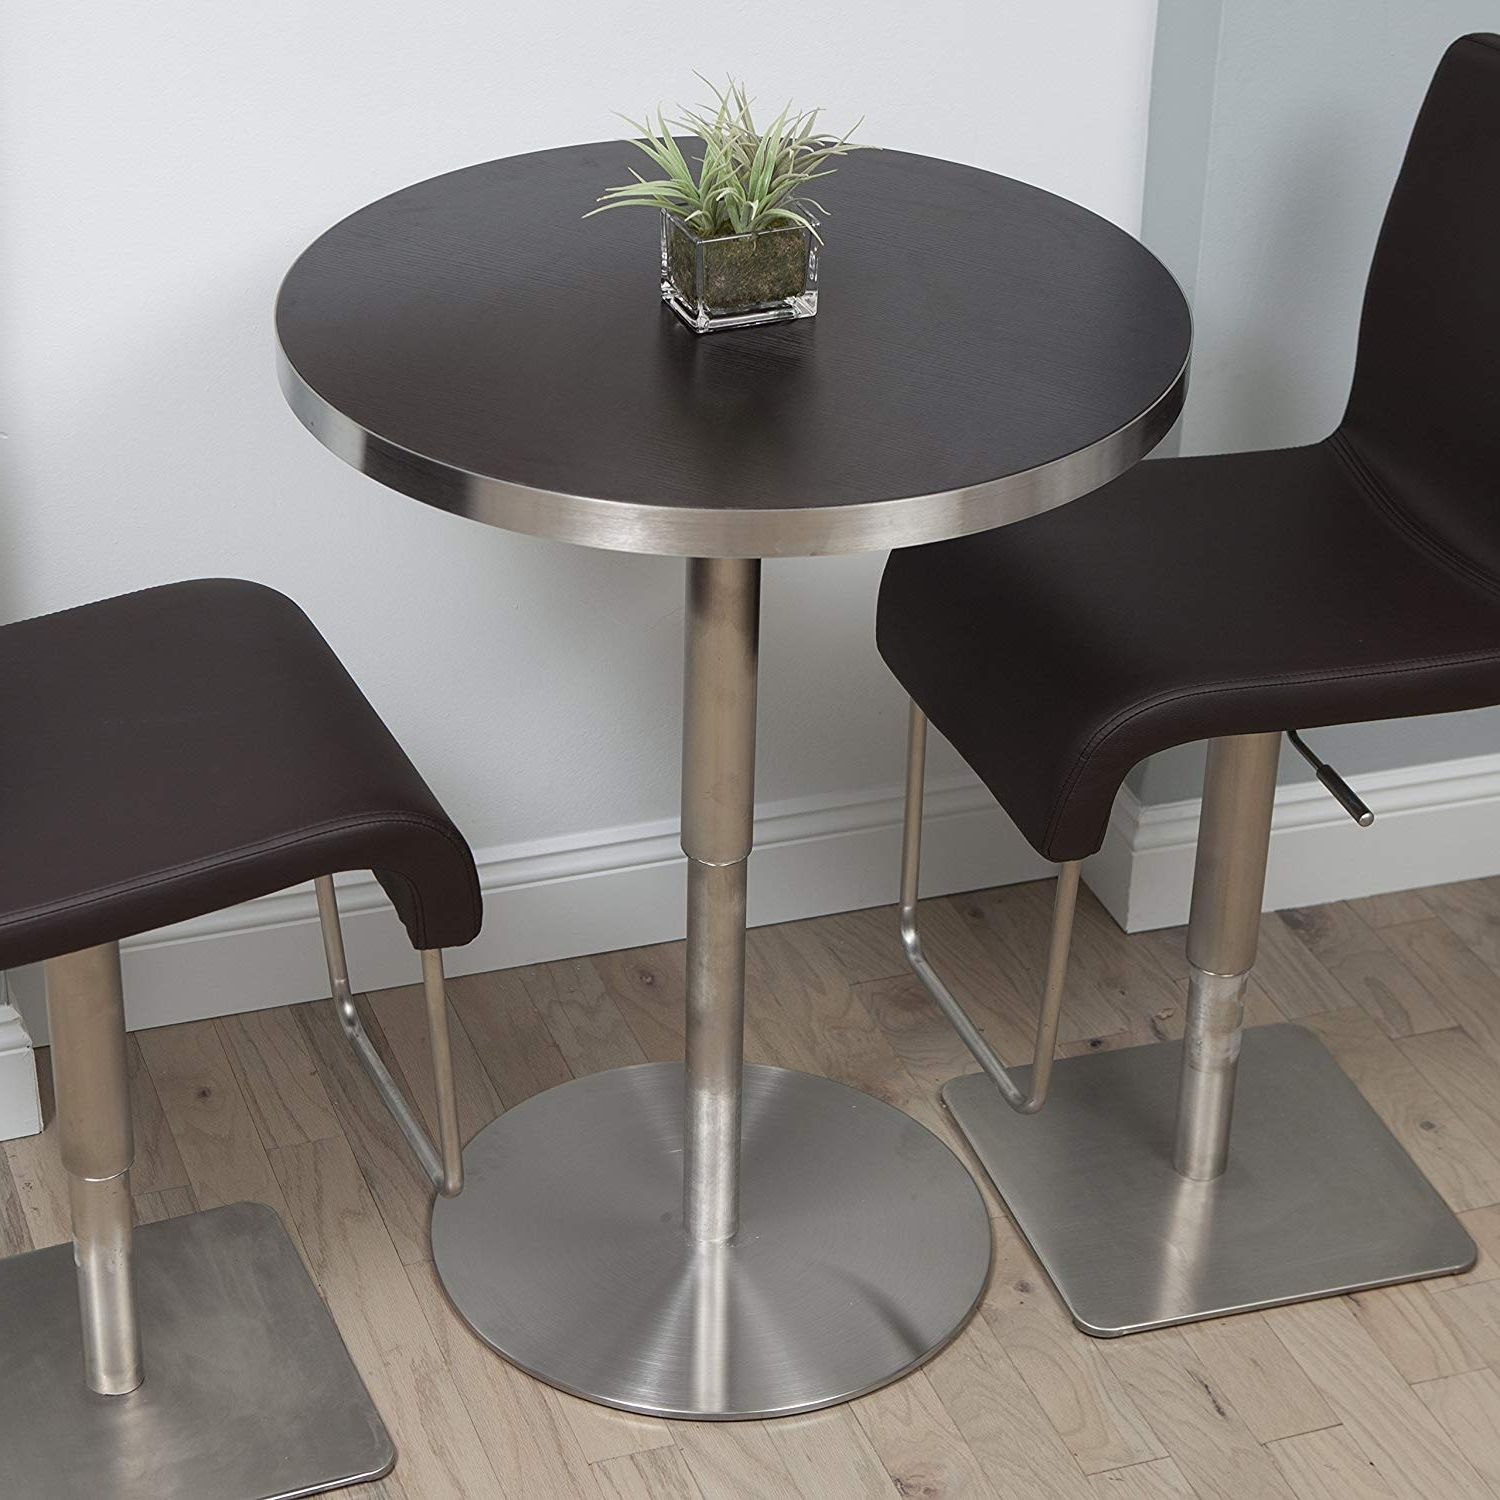 Popular Brushed Metal Dining Tables Inside Amazon – In The Mix Mix Brushed Stainless Steel Round Wood (Gallery 7 of 25)